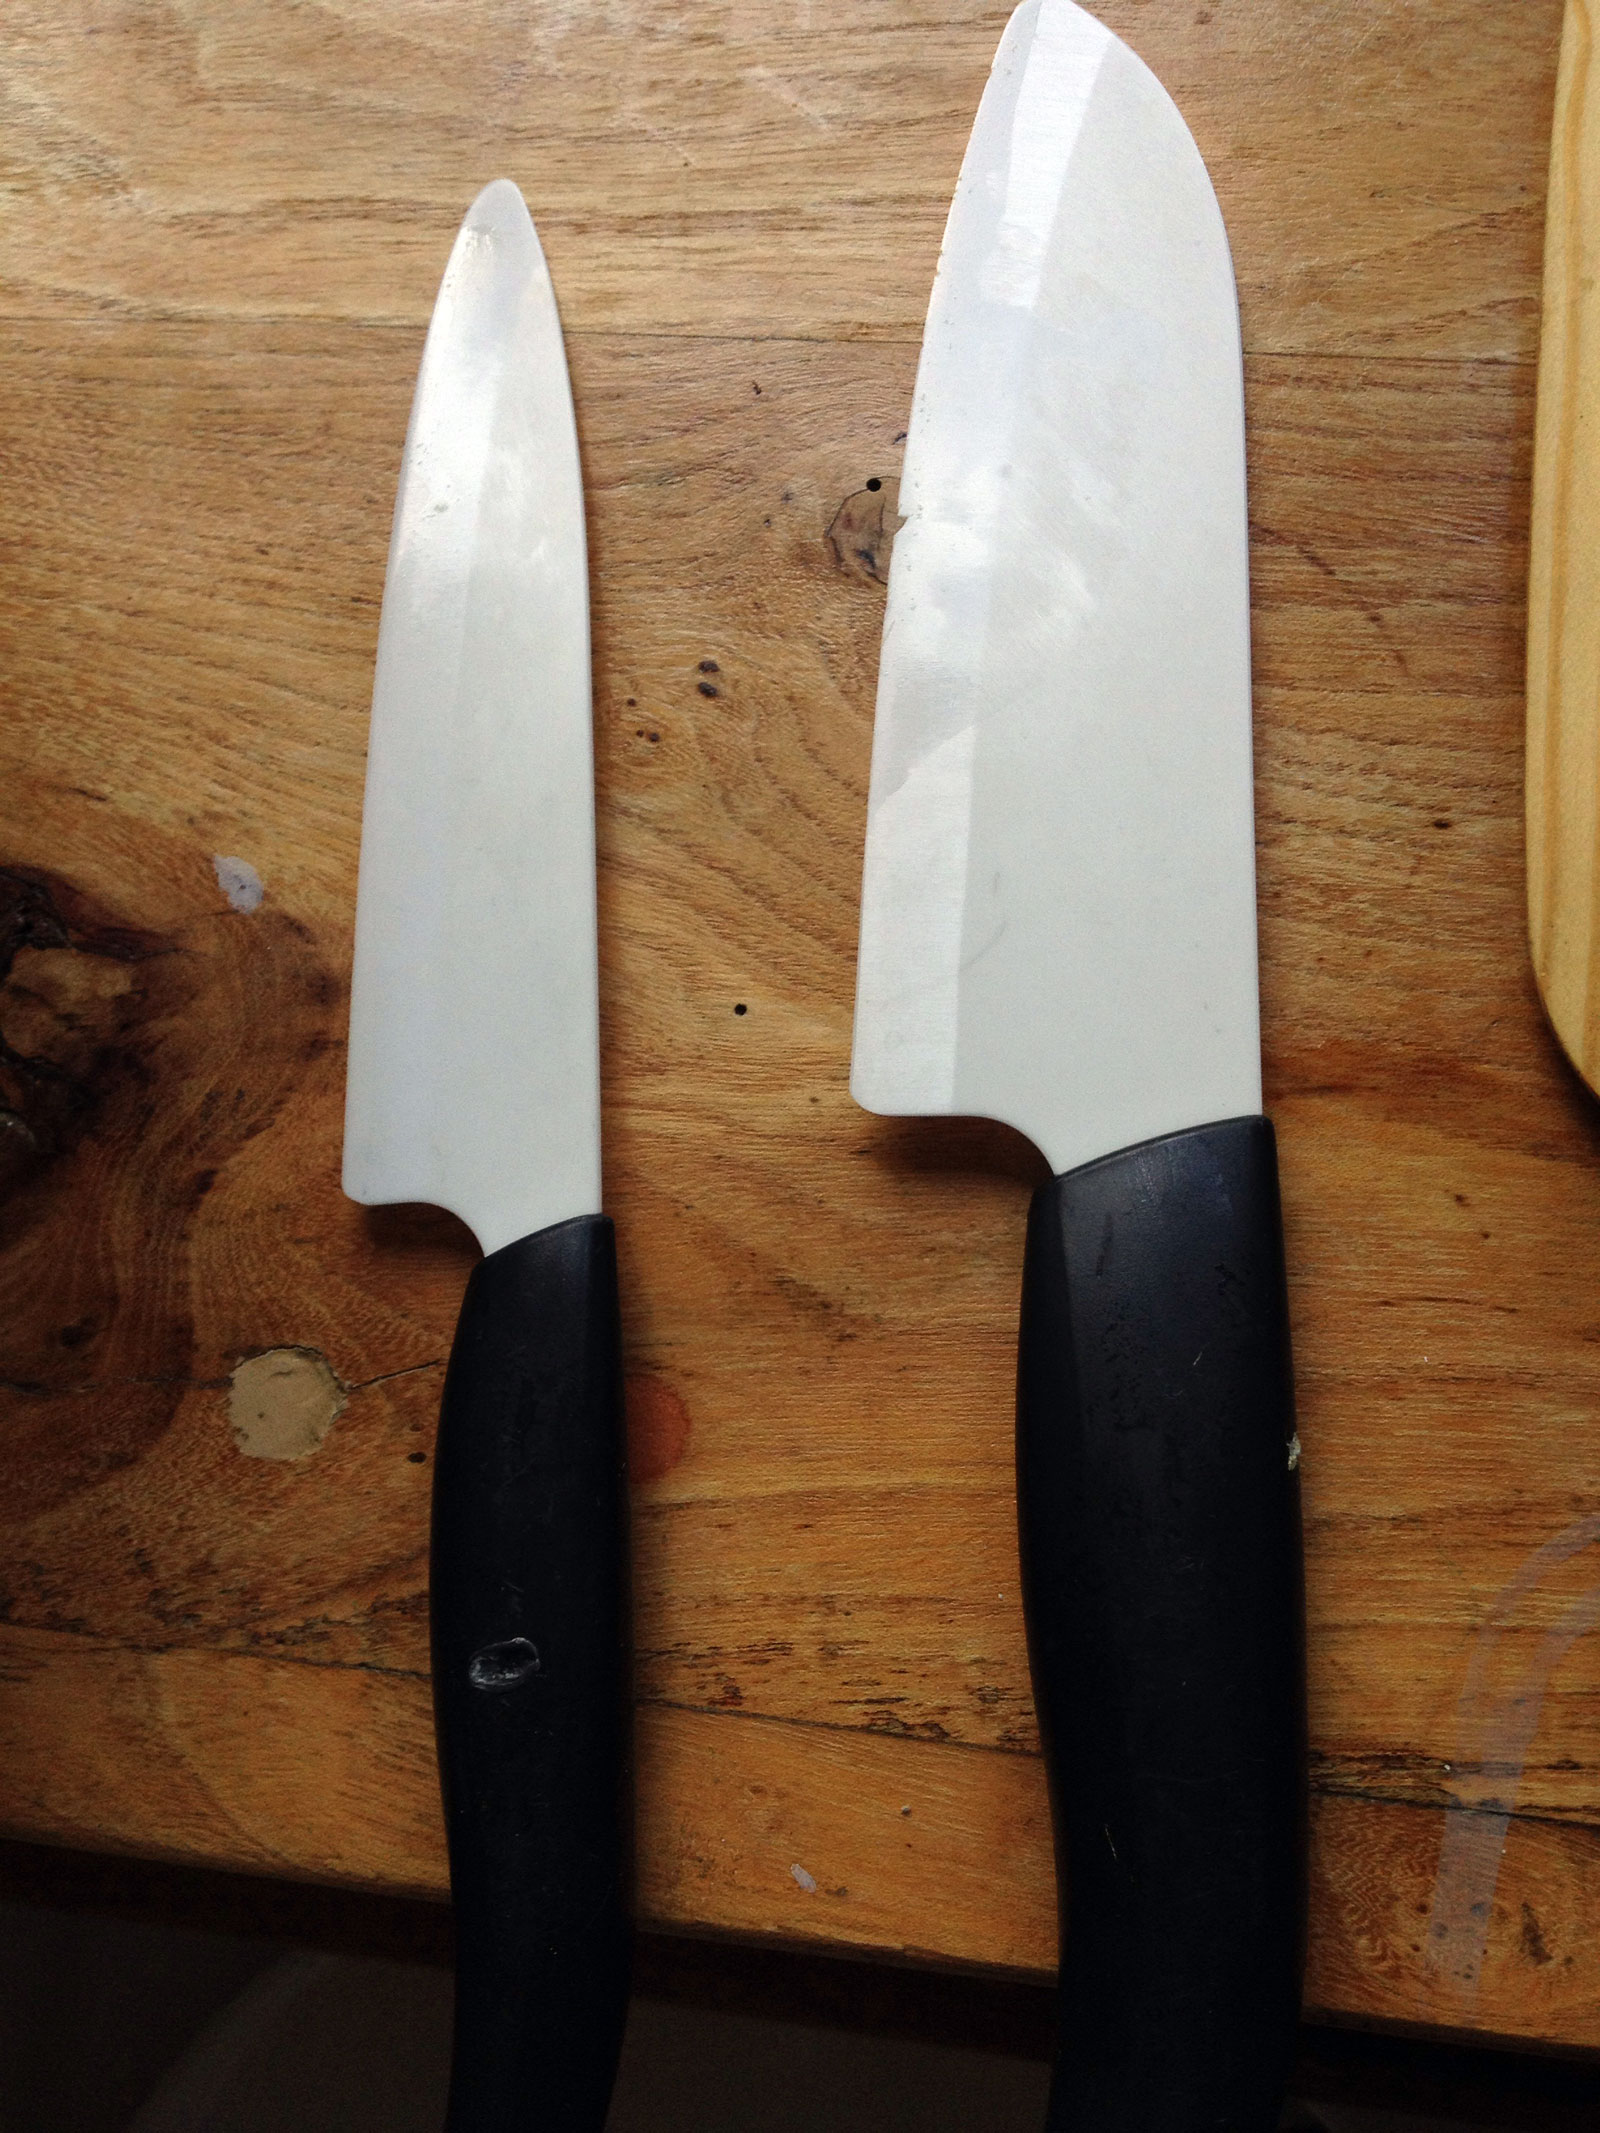 Blunt and chipped ceramic knives